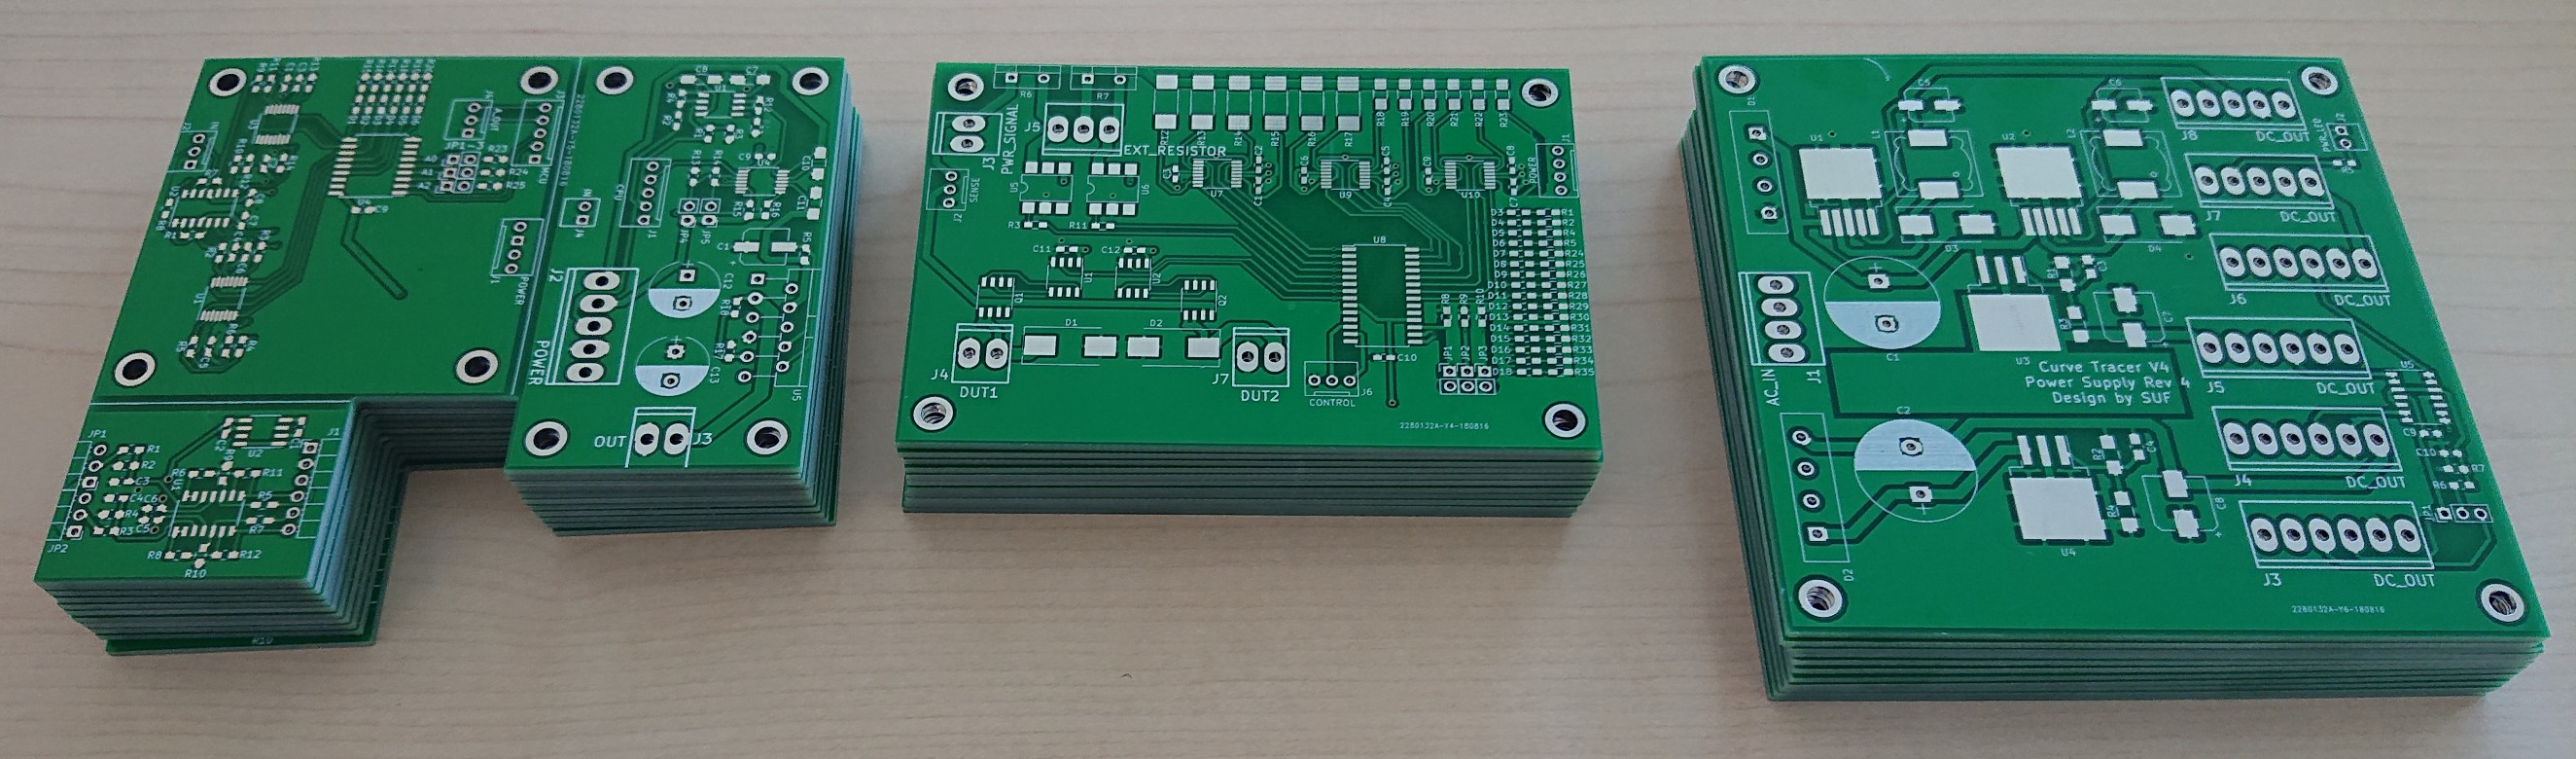 Microcontroller Based Curve Tracer Tester Electronics Forum Circuits Projects And Microcontrollers Arrived Boards